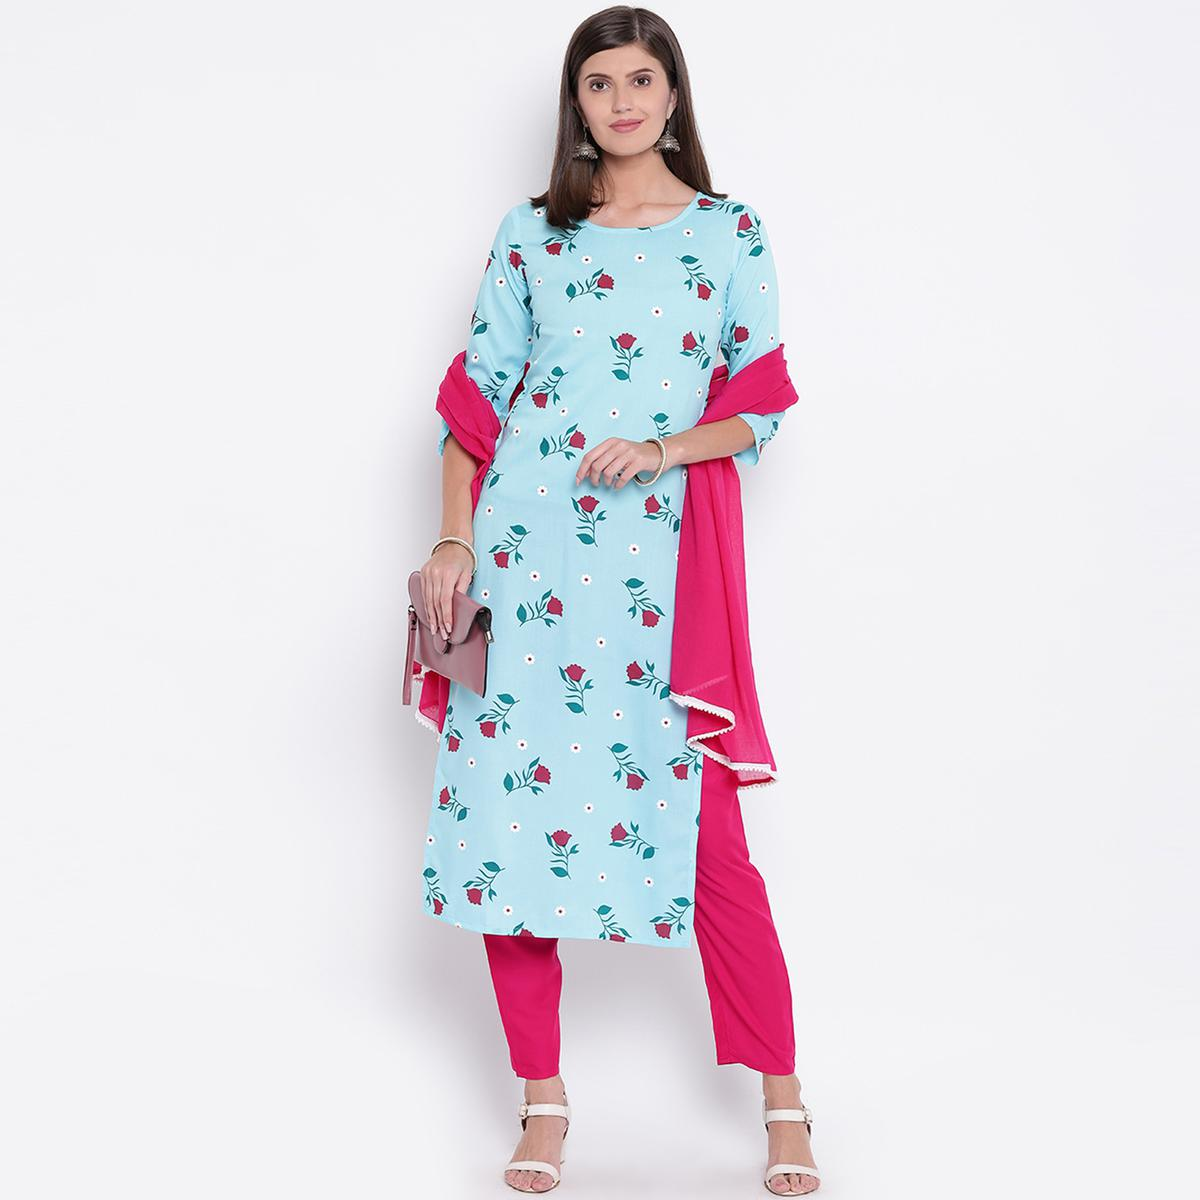 Breathtaking Aqua Blue Colored Casual Printed Rayon Kurti-Bottom Set With Dupatta